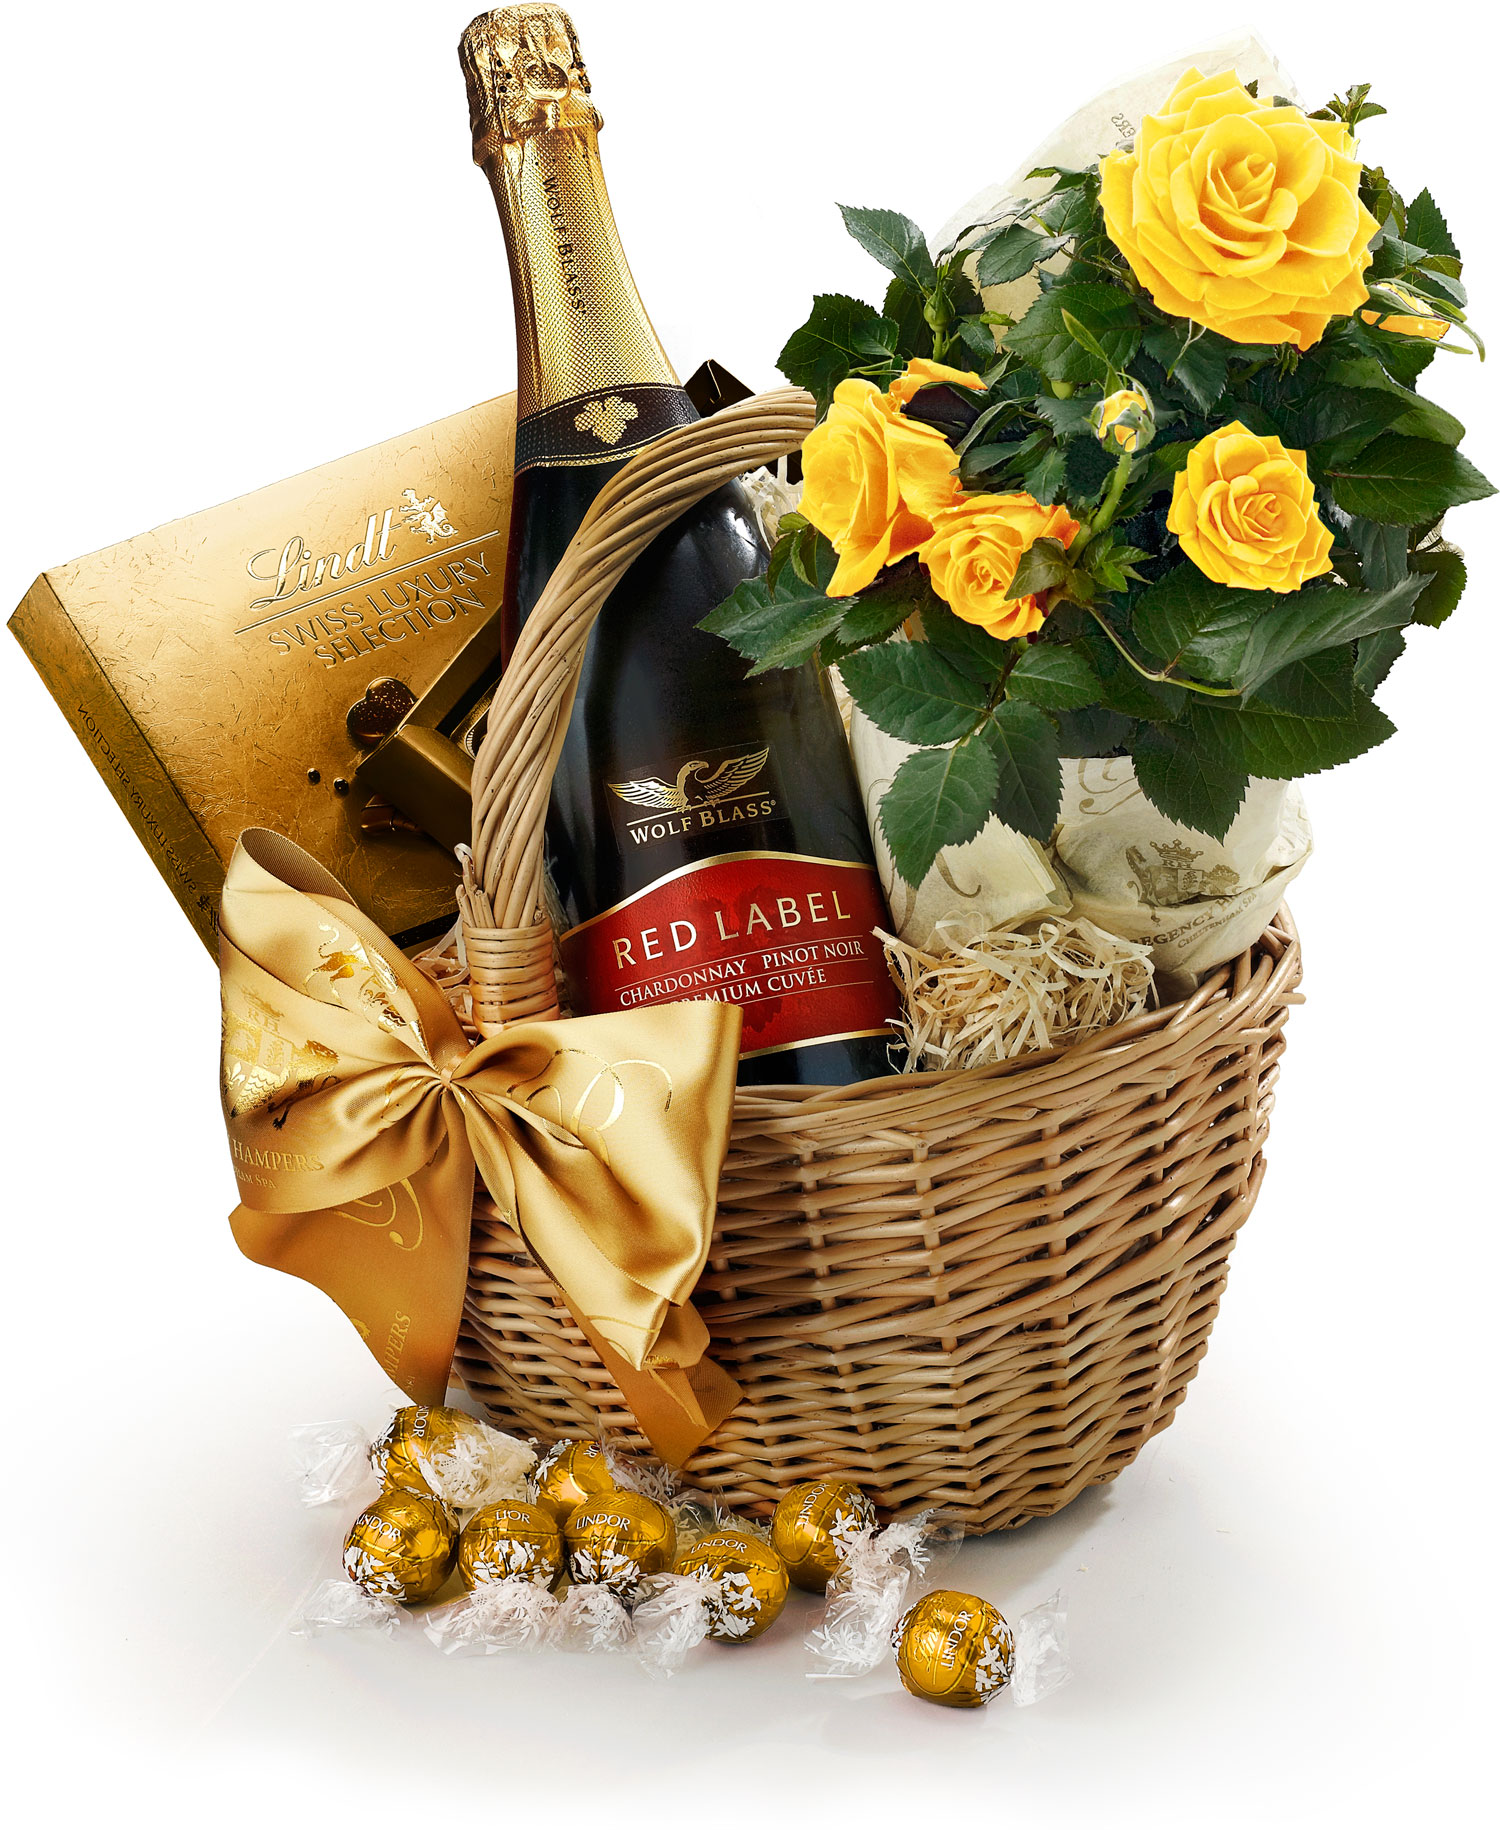 Chocolate Gift Baskets: Roses & Chocolate Gift Basket With Sparkling Wine